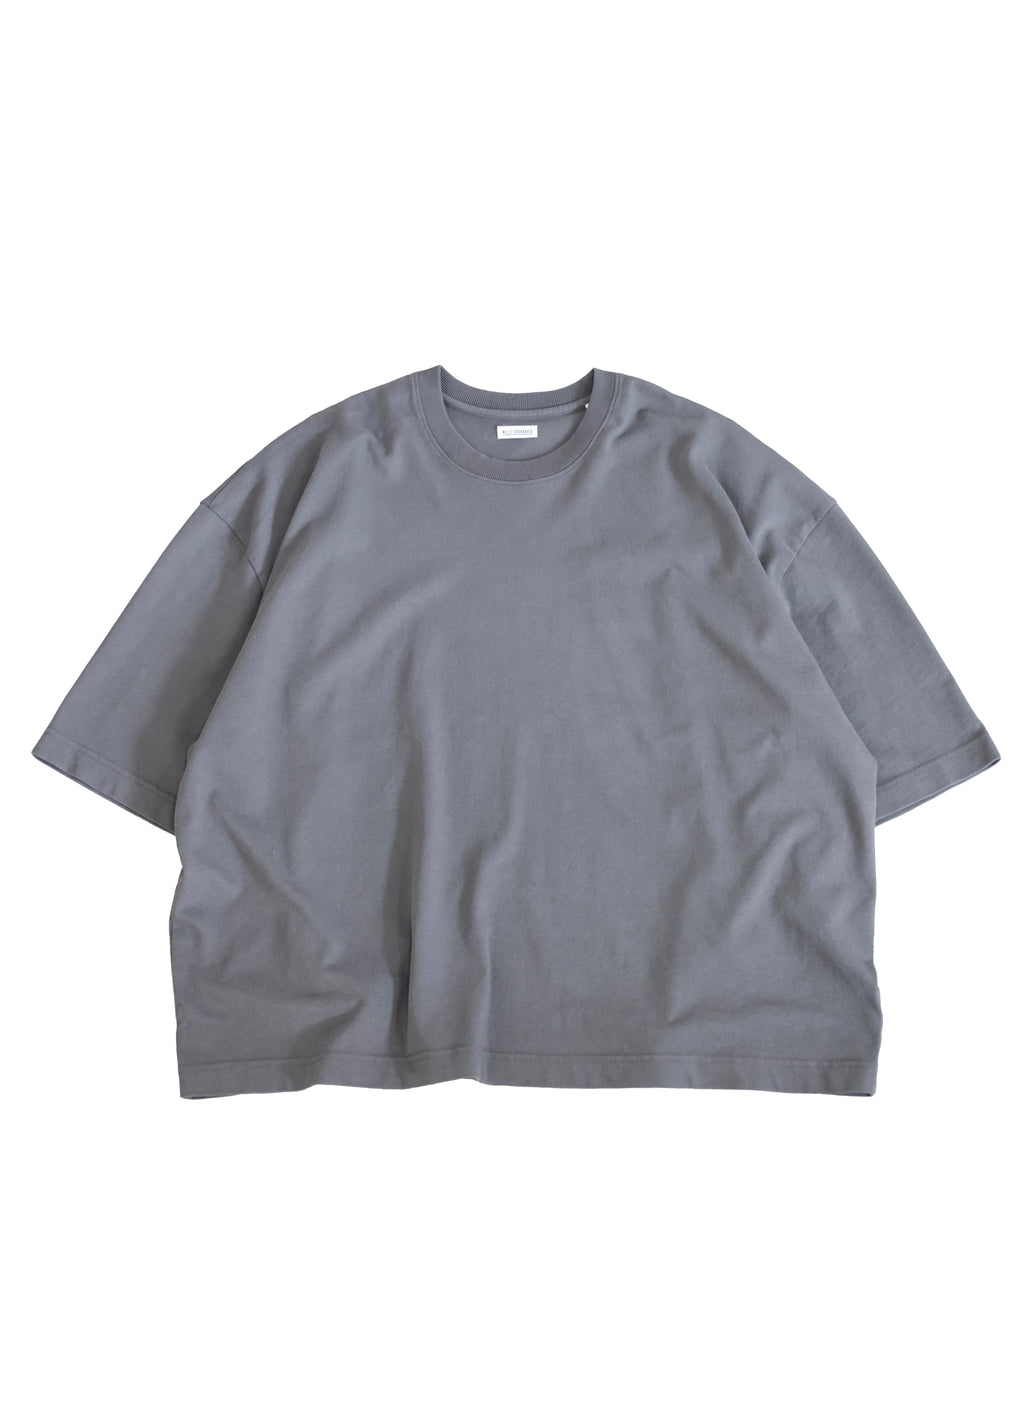 WILLY CHAVARRIA (ウィリーチャバリア) / SS MACHO BUFFLAO TEE CHARCOAL 【WILLY CHAVARRIA】定番であり、間違いないBUFFALO TEE。Peruvian Tanguis cotton jerseyを使用。正面画像。